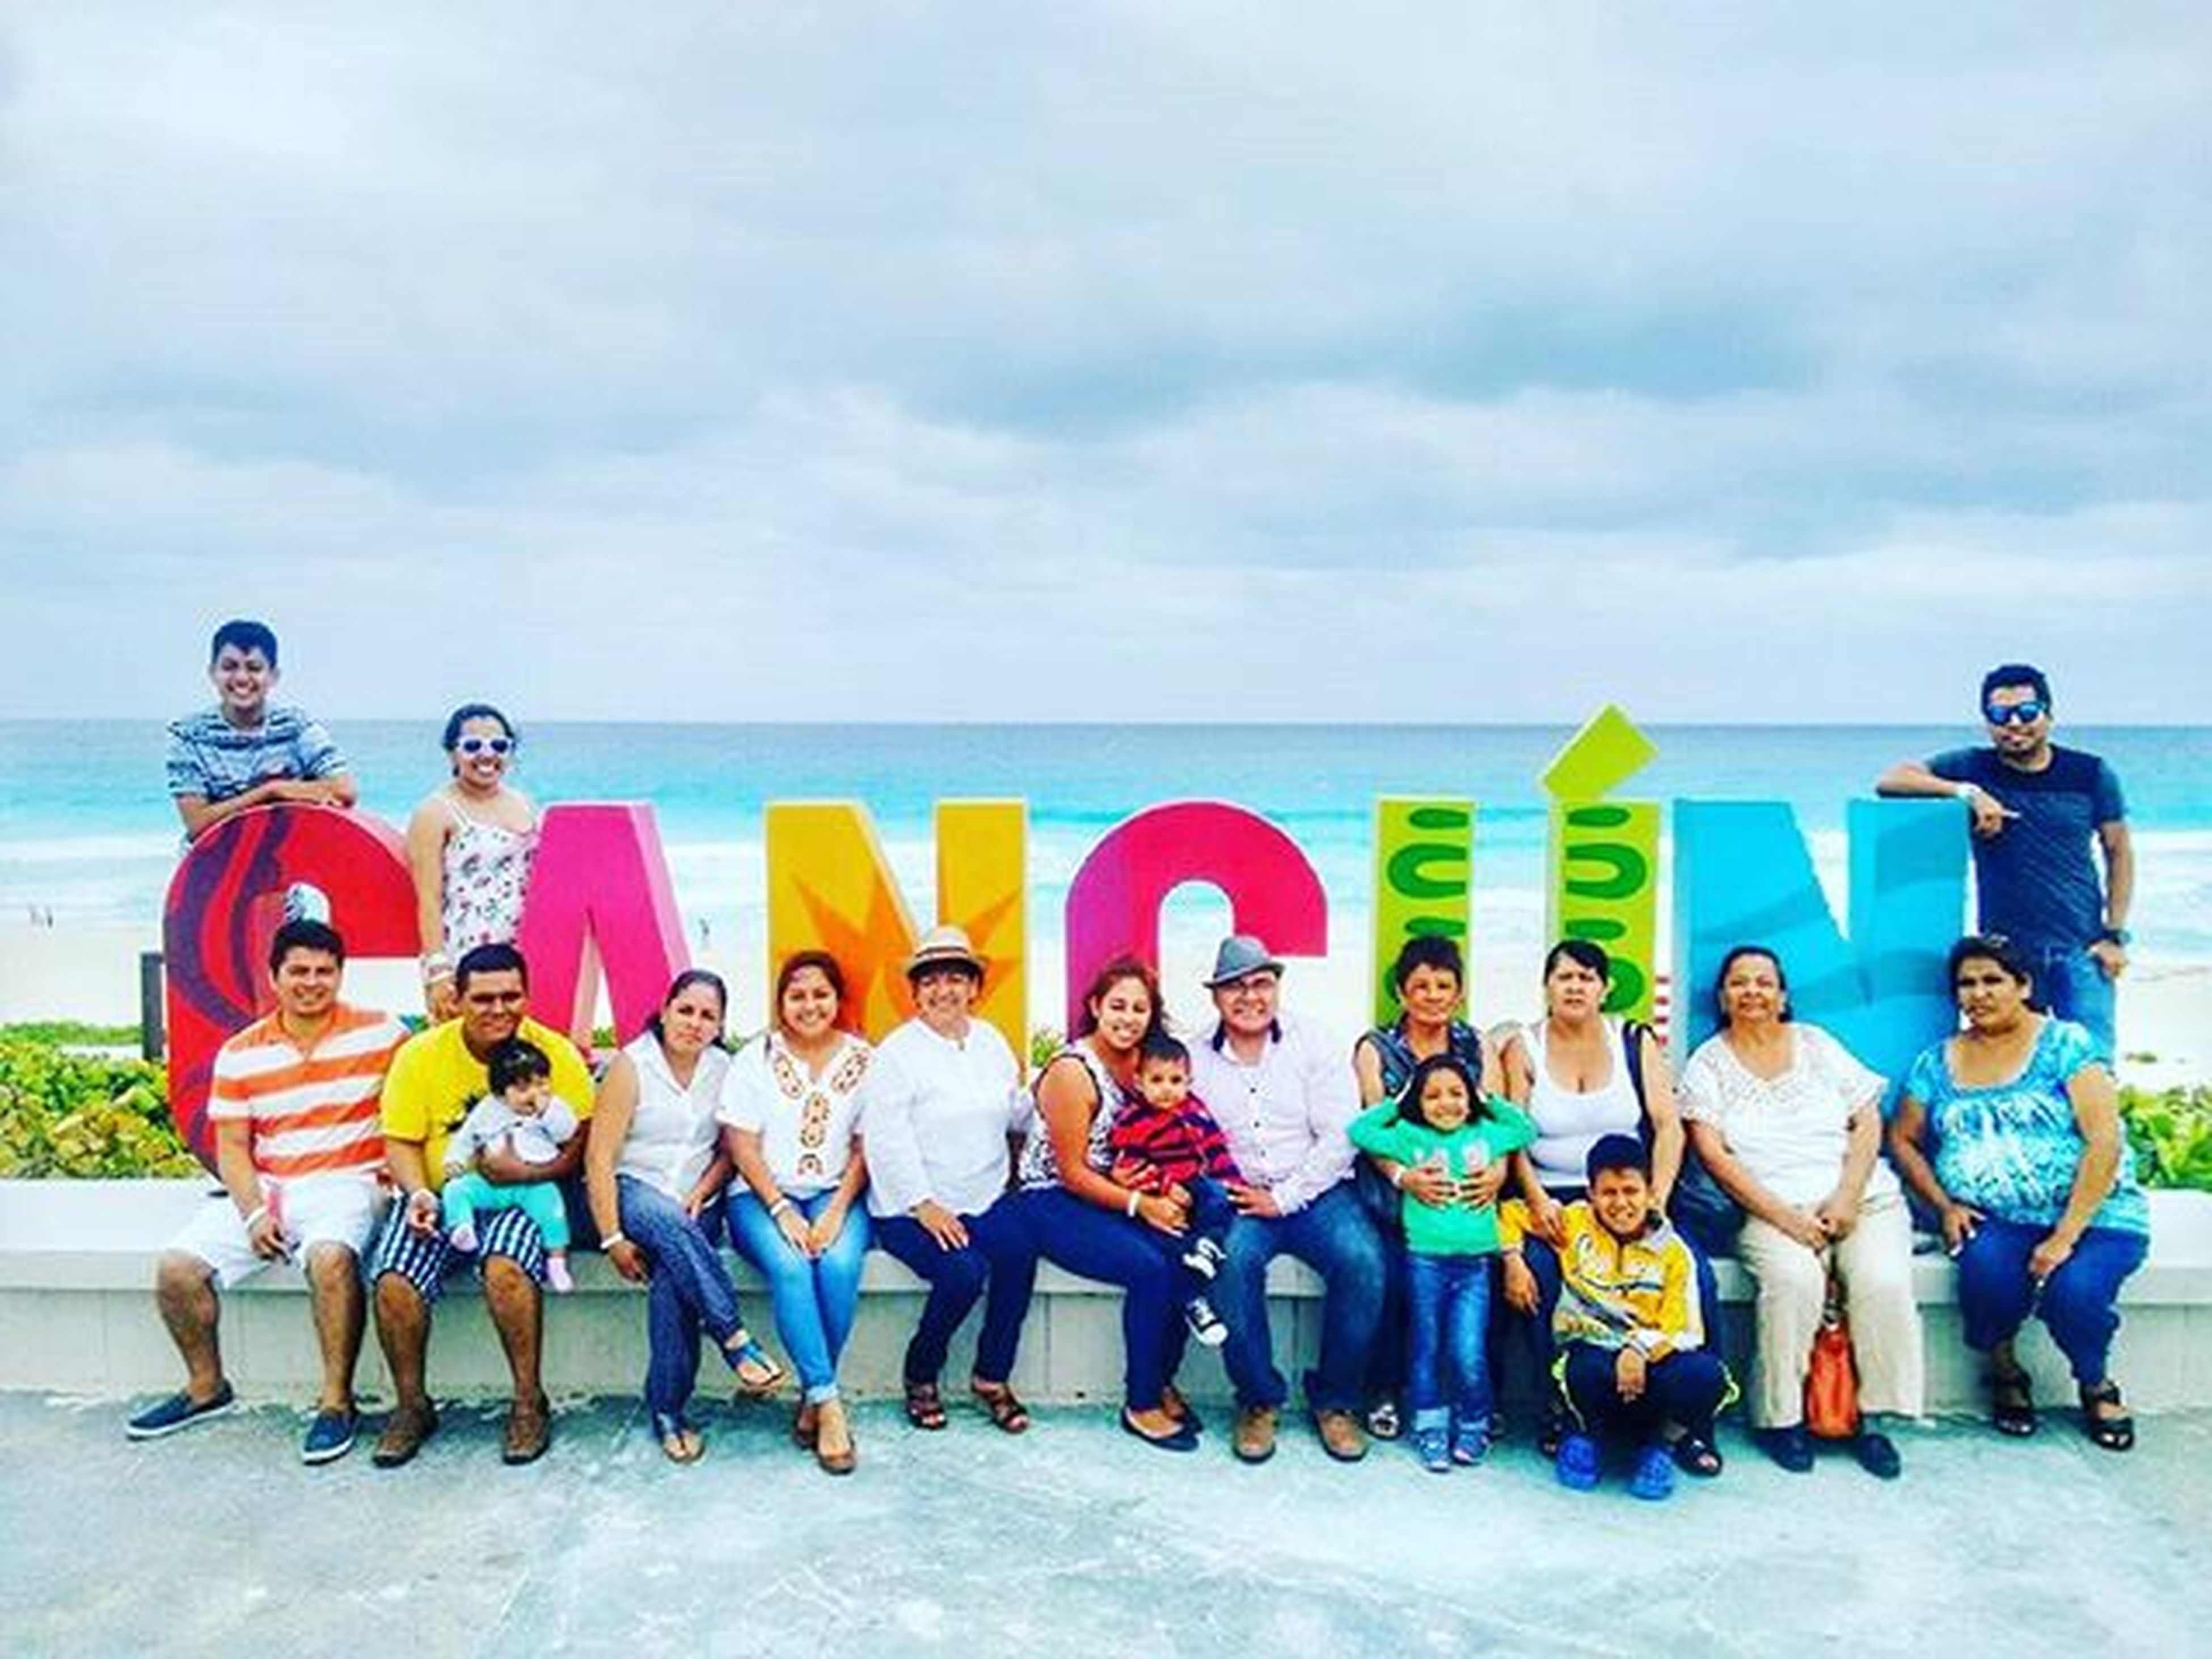 lifestyles, beach, leisure activity, sky, togetherness, childhood, sea, cloud - sky, shore, casual clothing, vacations, full length, boys, sand, bonding, girls, love, water, horizon over water